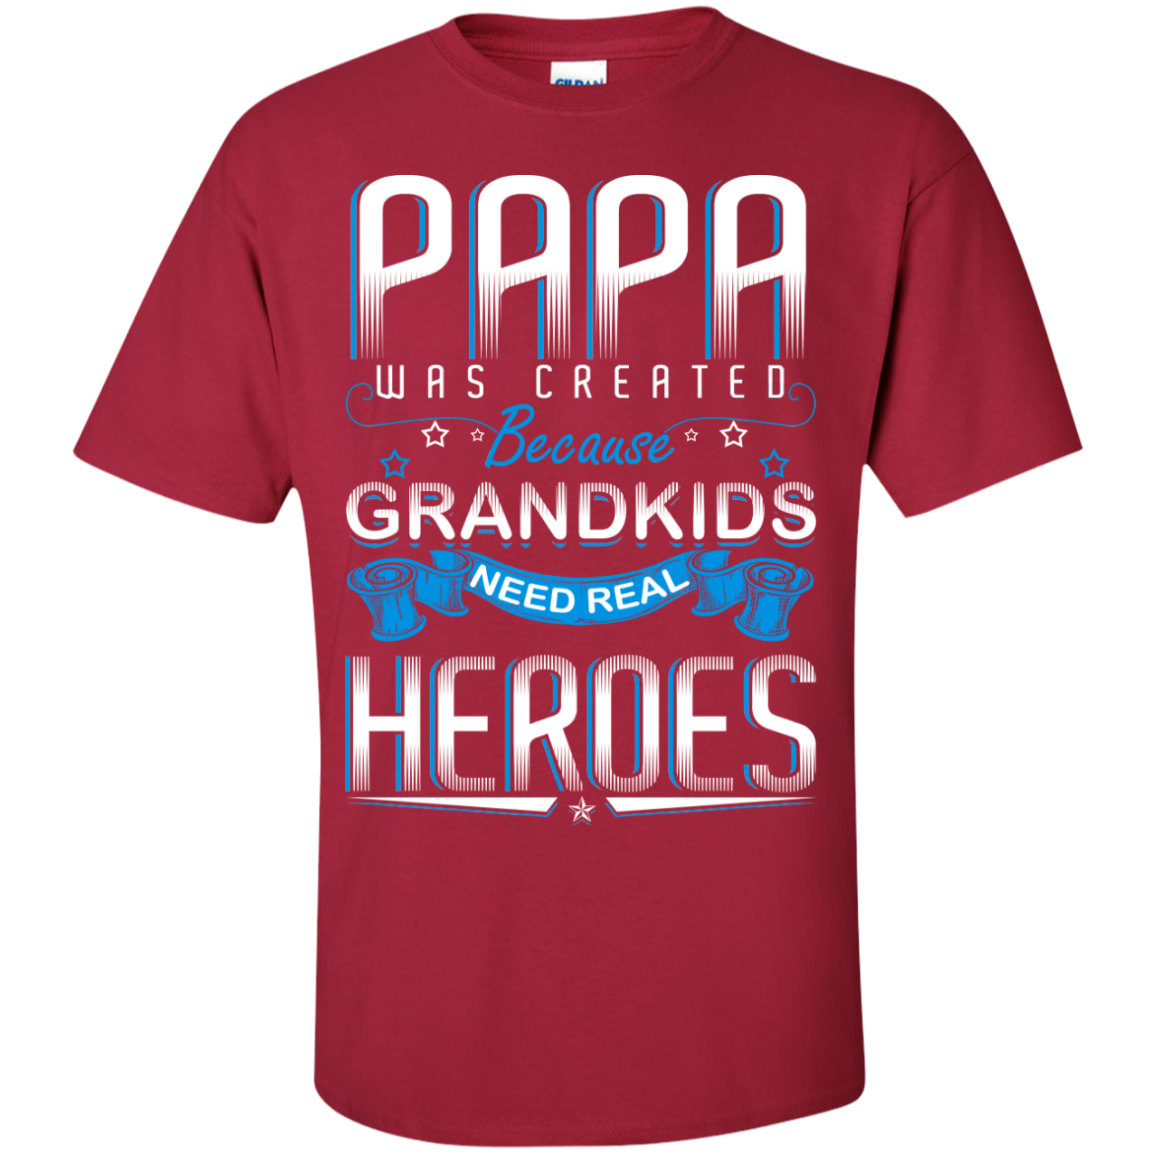 Papa was created Because GRANDKIDS Need Real HEROES - TheSunCat.com - 2